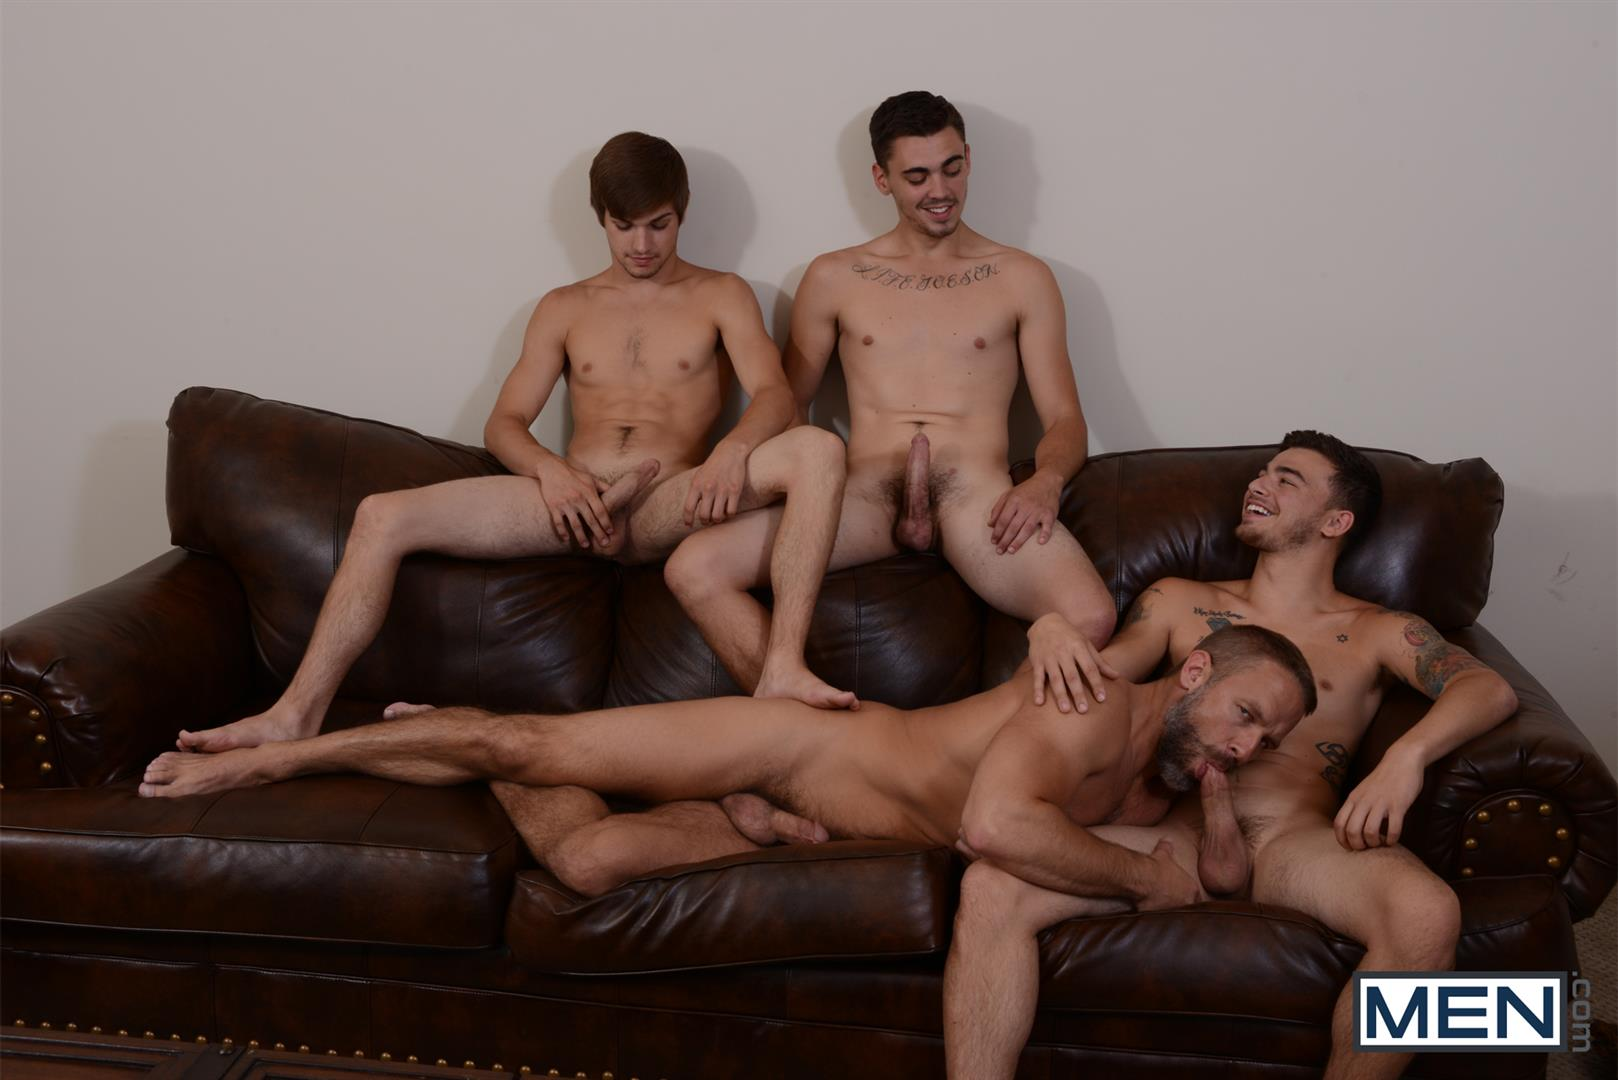 Men Jizz Orgy Asher Hawk and Dirk Caber and Johnny Rapid and Trevor Spade Triple Penetrated In the Ass Amateur Gay Porn 09